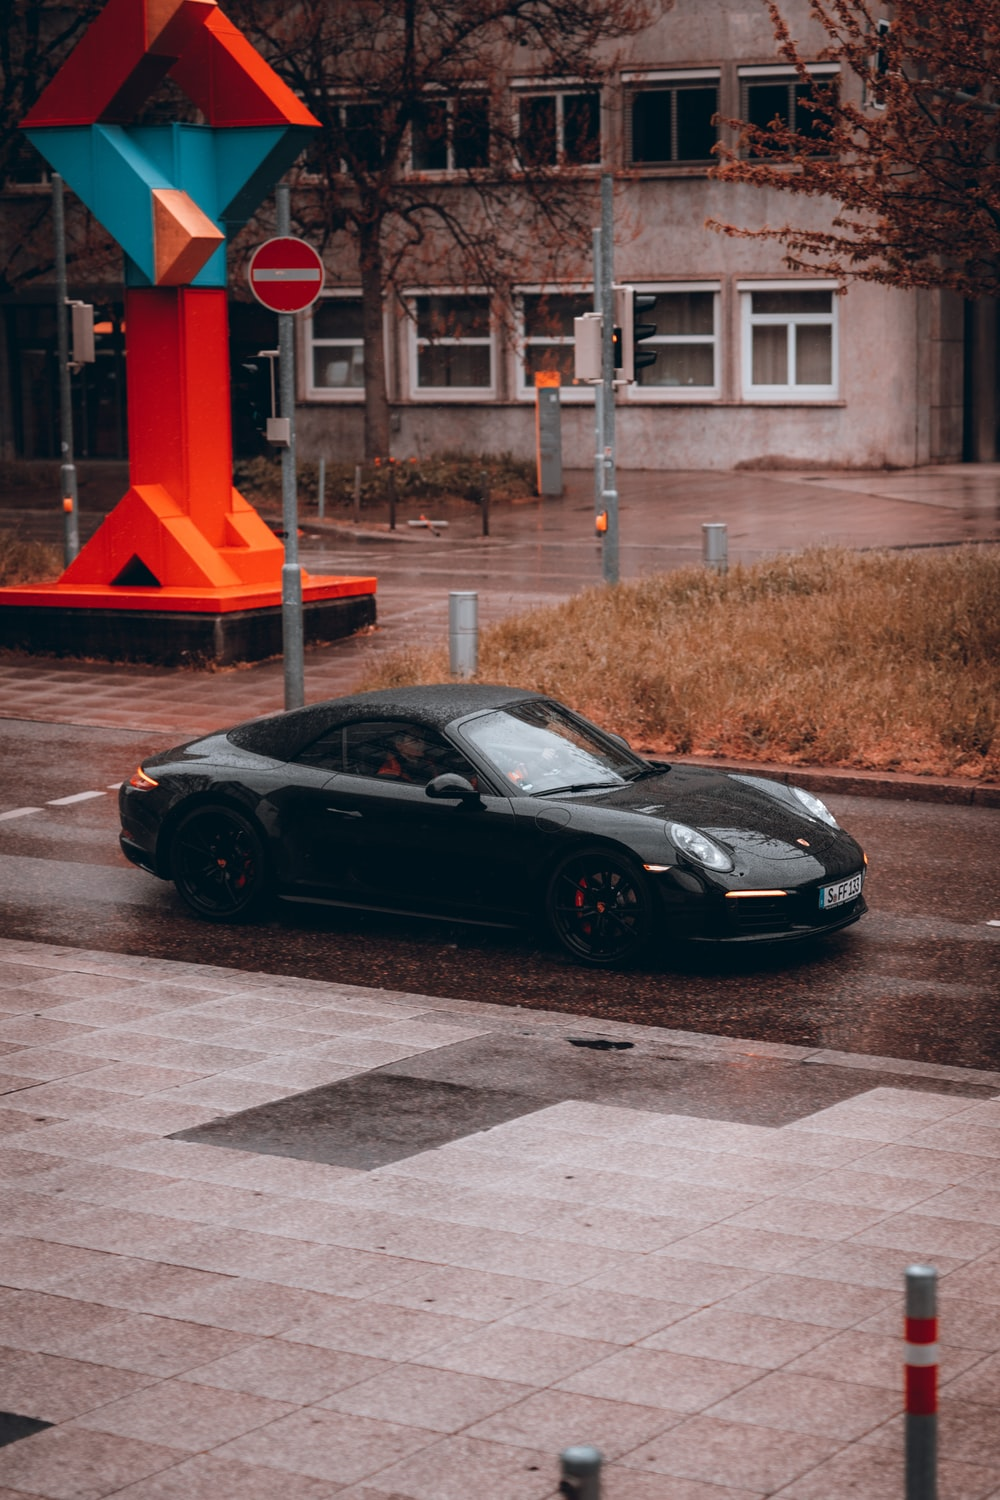 black porsche 911 parked beside red and white building